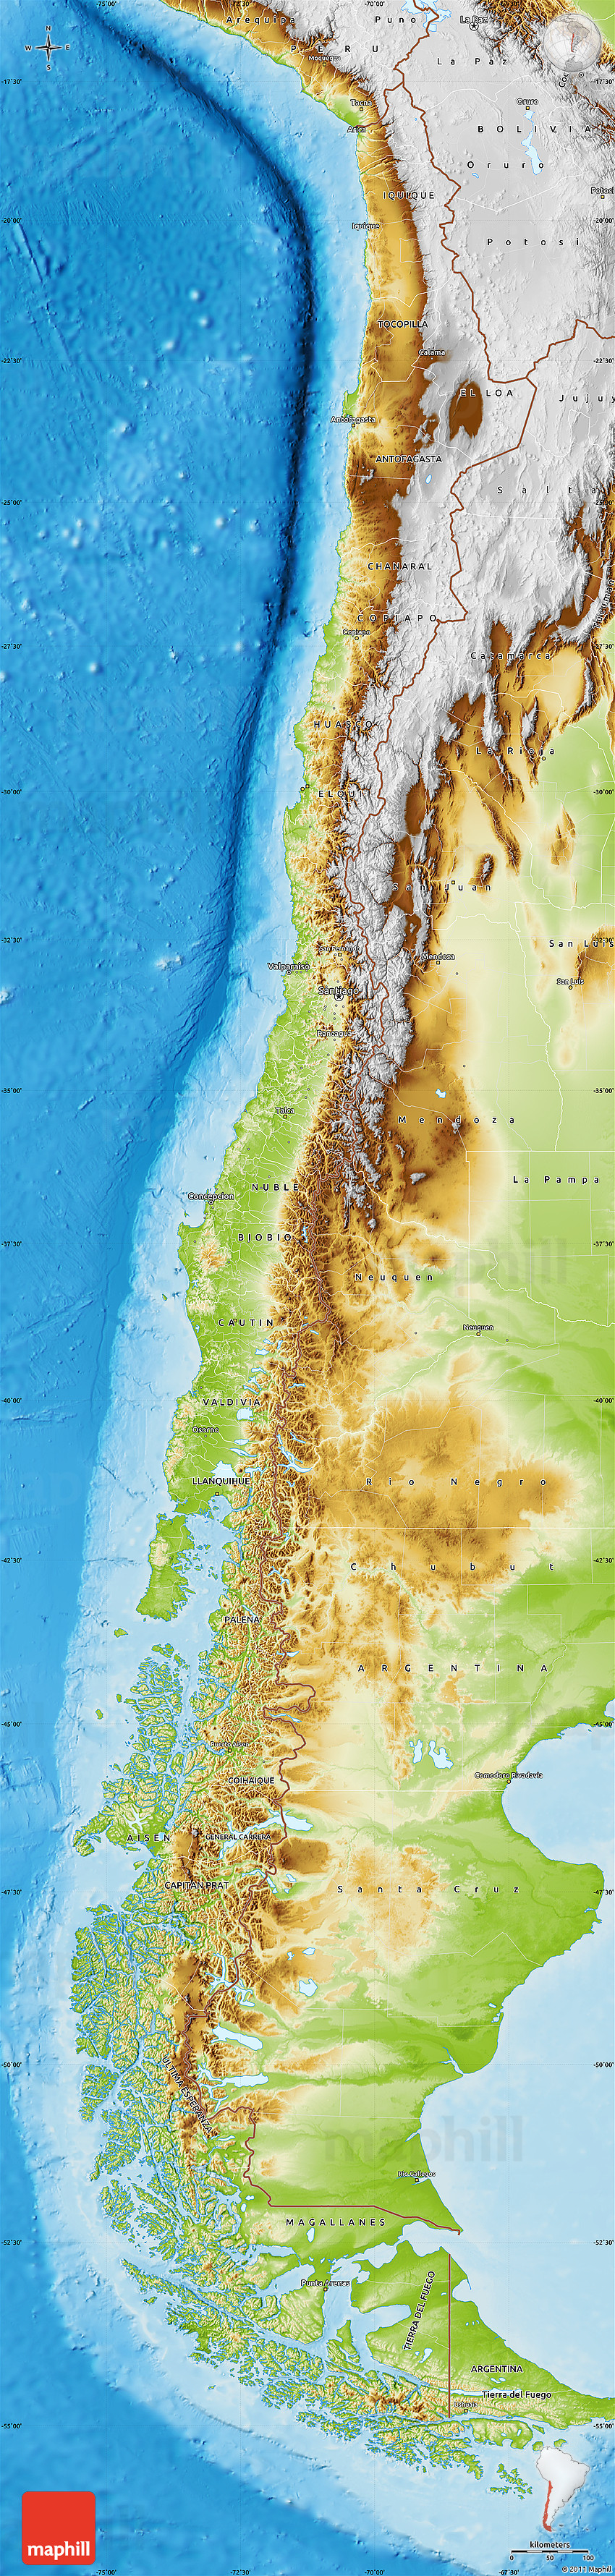 Physical Map of Chile